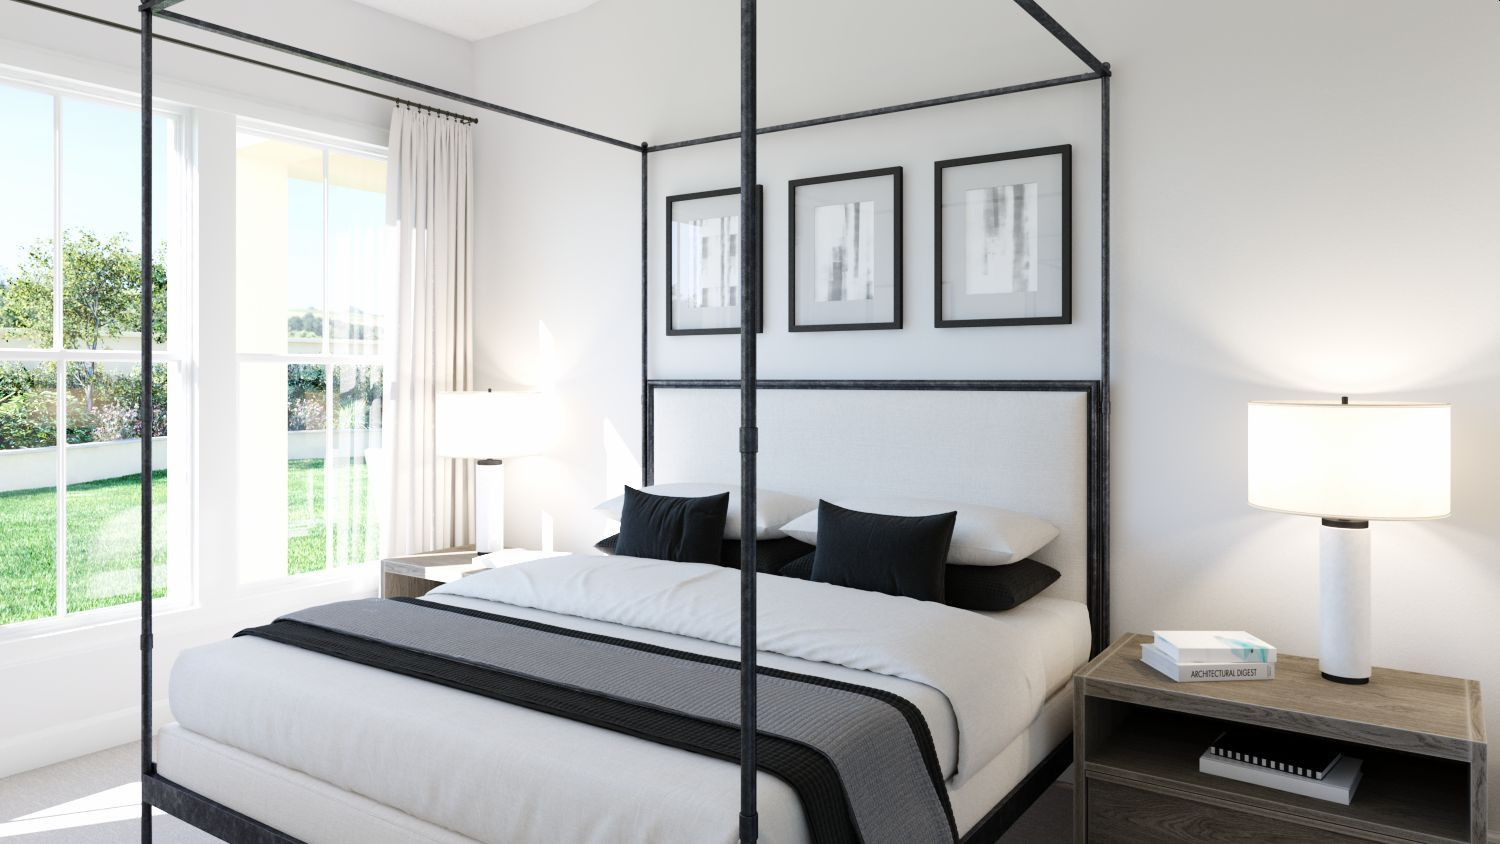 Bedroom featured in the Burke By Olivia Clarke Homes  in Dallas, TX